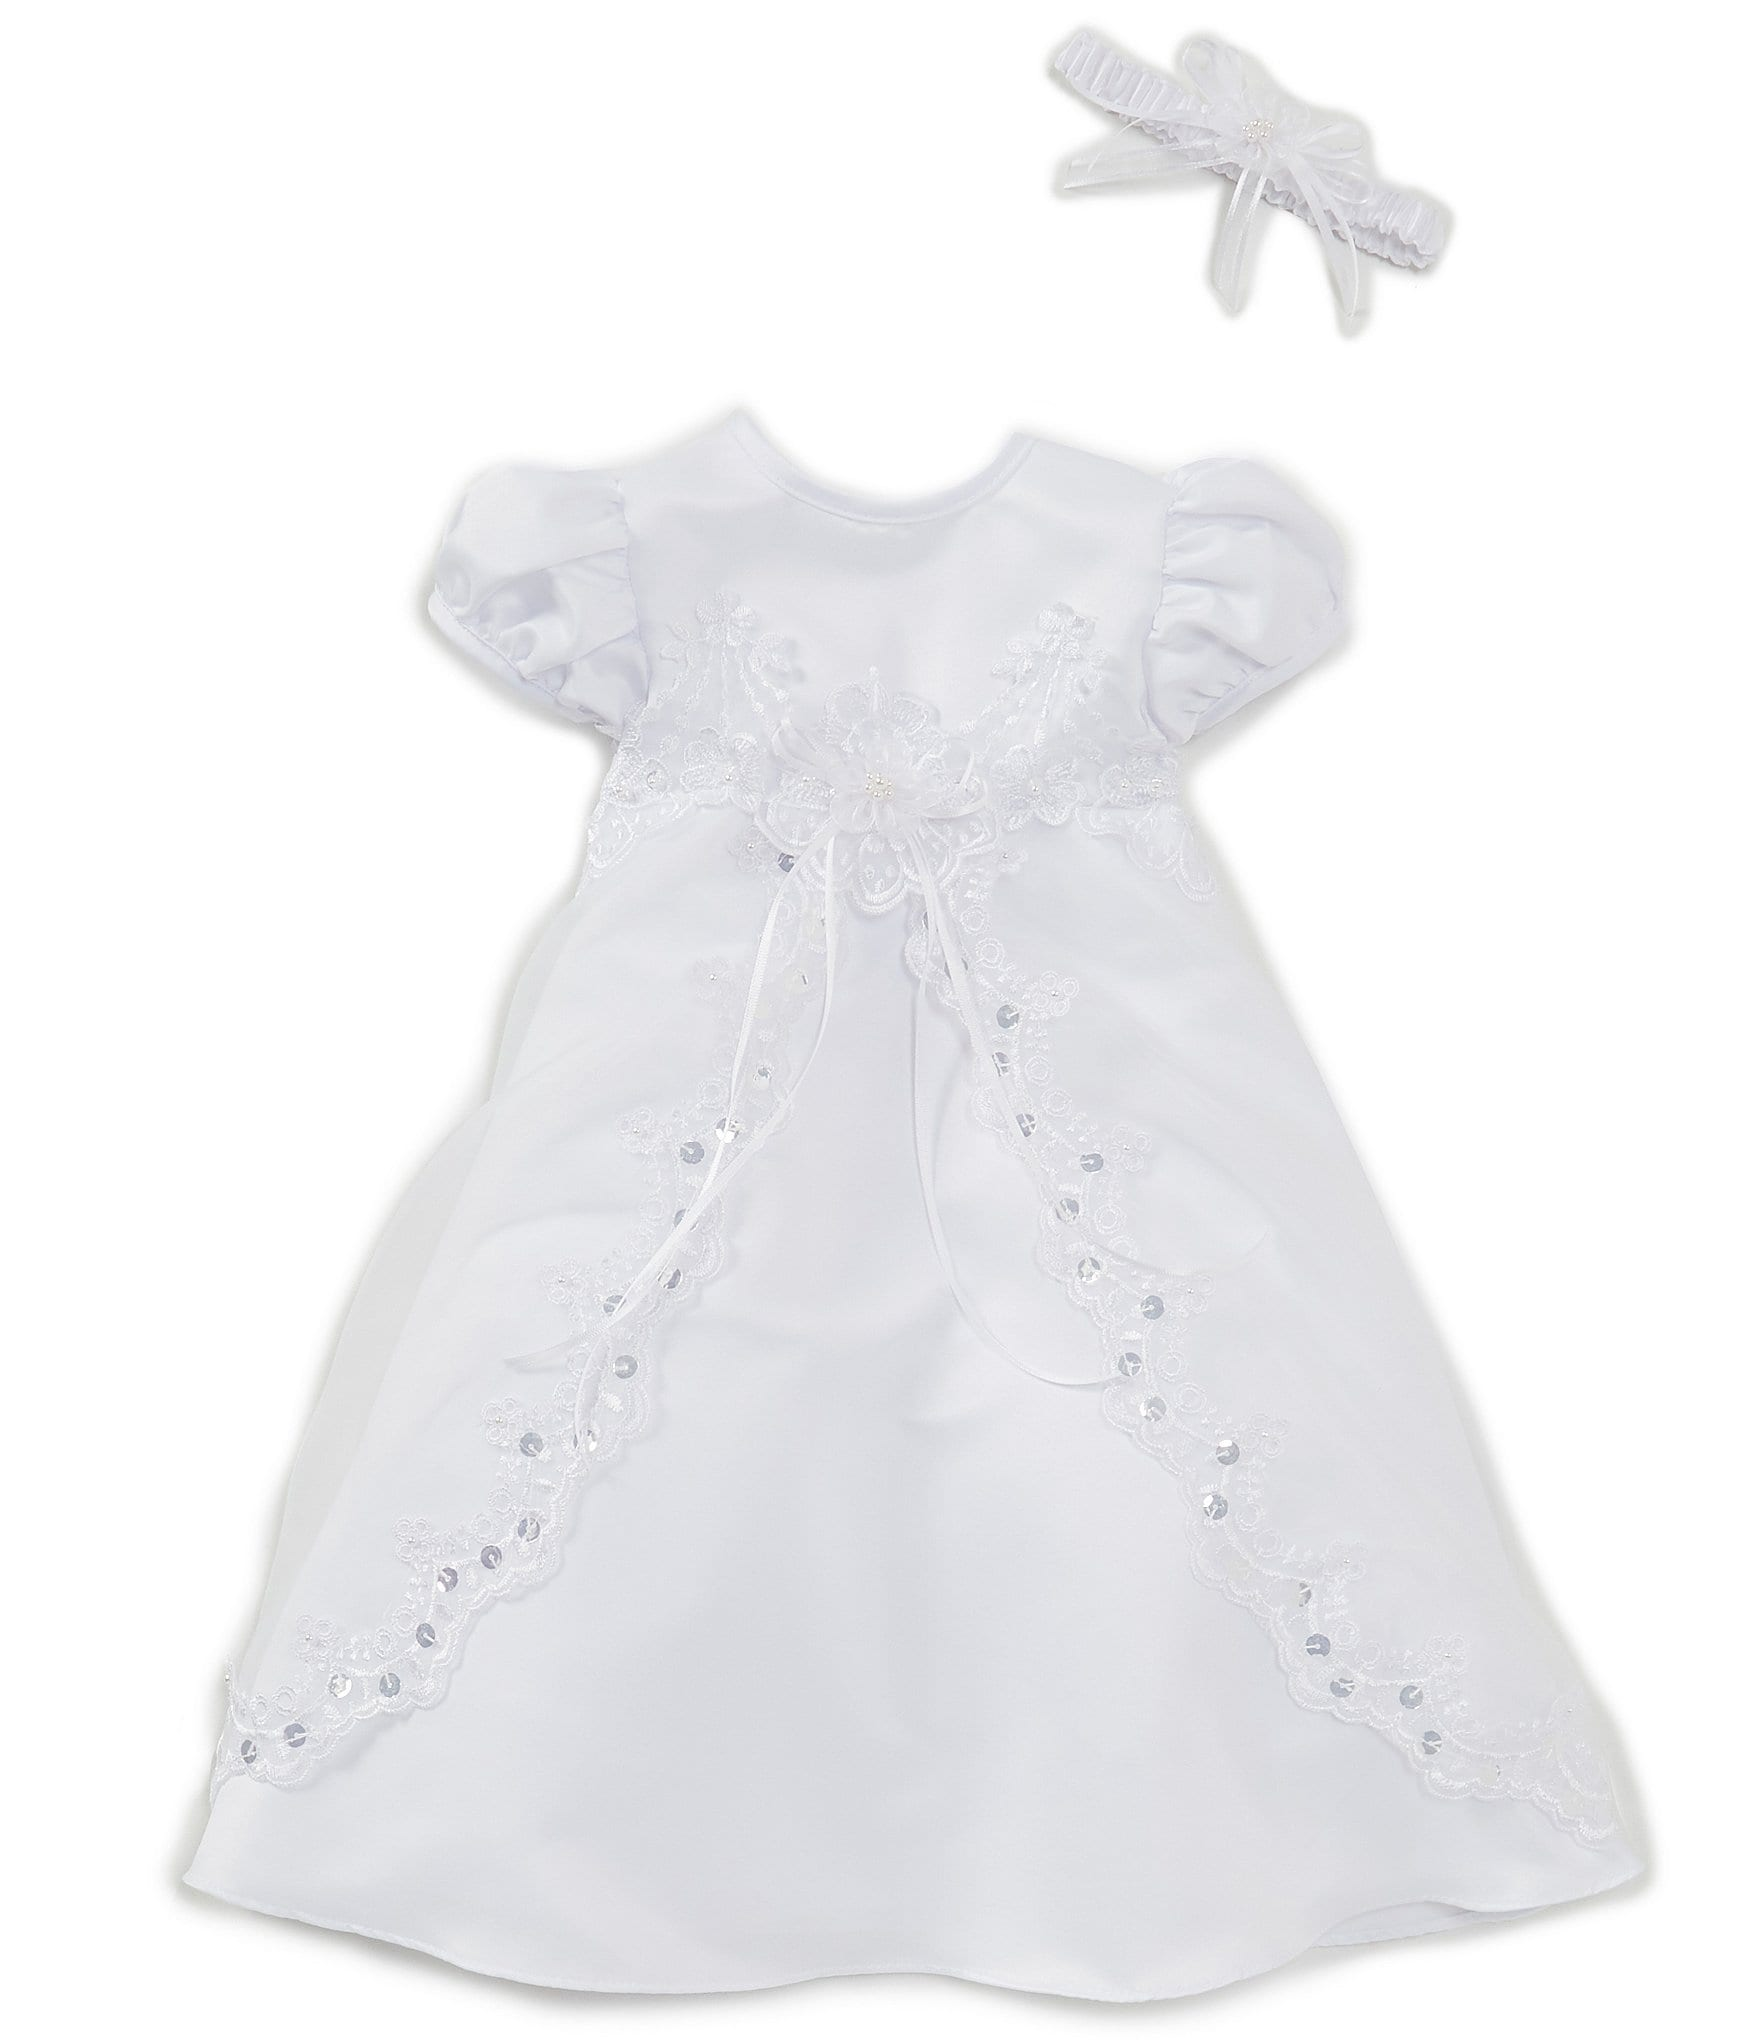 9fe6334fb Baby Girl Clothing | Dillard's